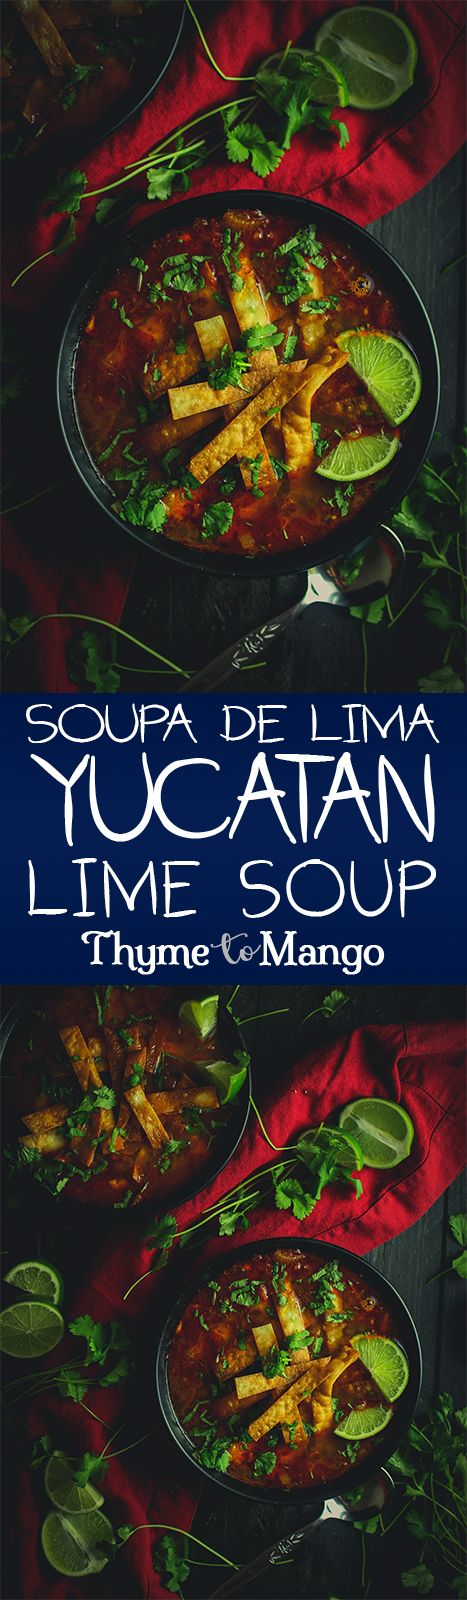 A little bit tangy, a little bit spicy, and a whole lot of delicious, this soup de lima (aka lime soup) is a kick-ass Yucatán dish!